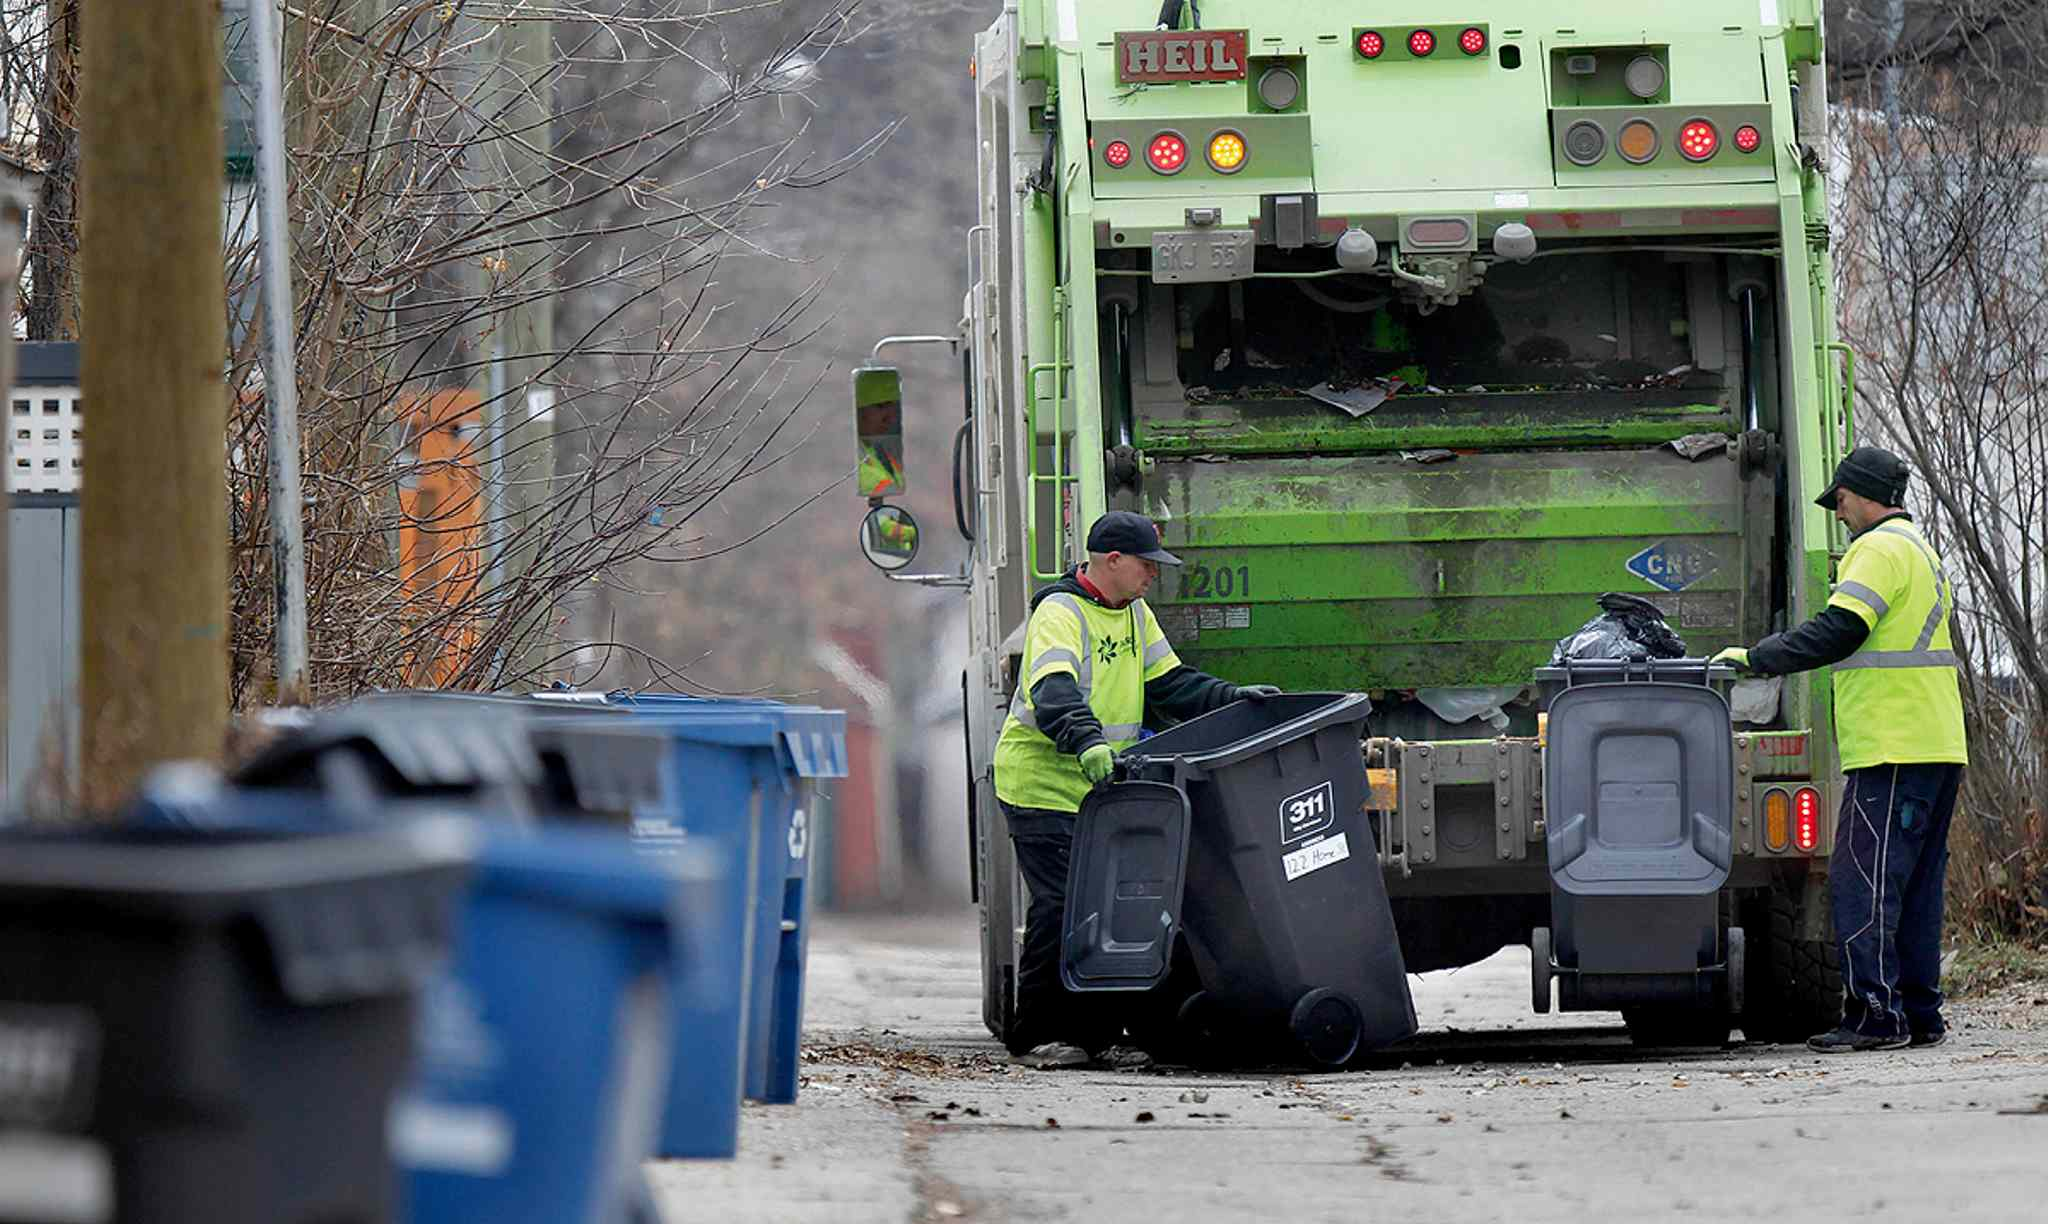 An Emterra team collects garbage in Wolseley in this 2012 file photo. Those who worked collecting garbage and recycling this past winter deserve our thanks, our columnist says.